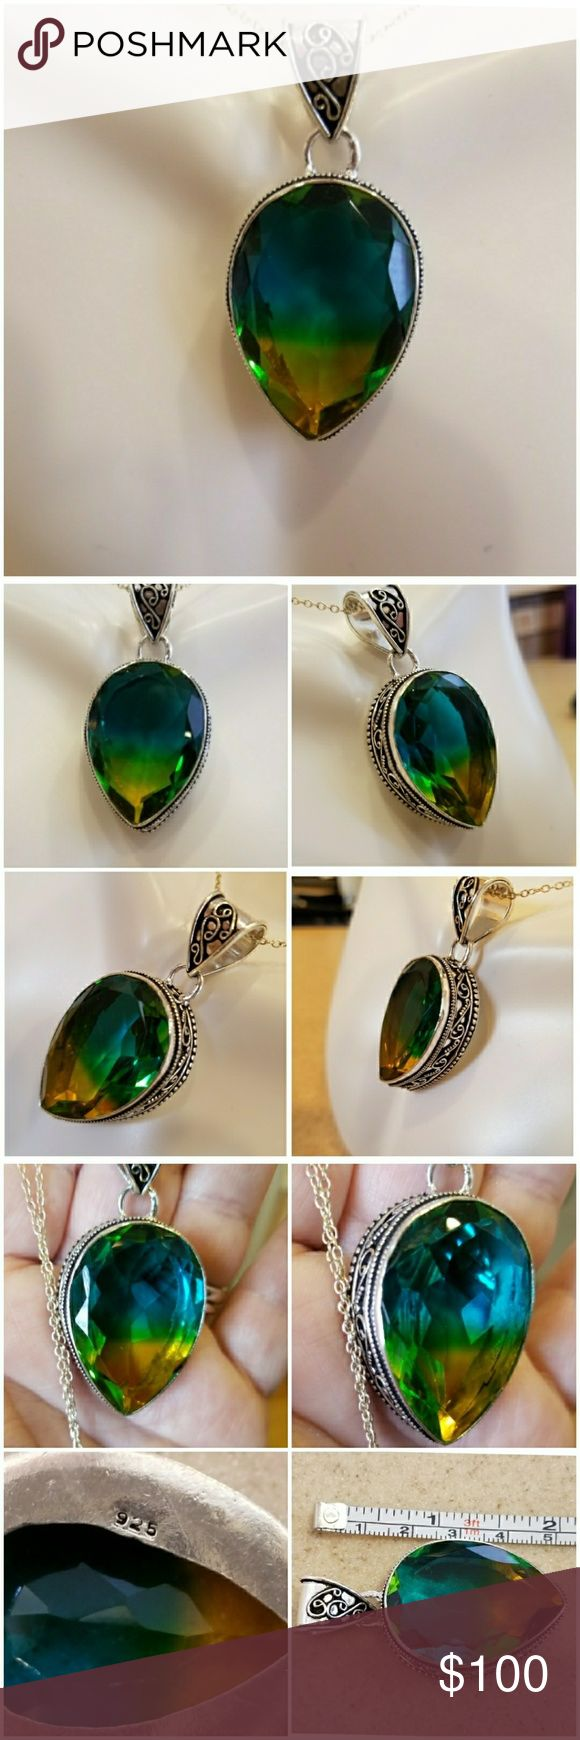 Genuine 86ct Faceted Tourmaline Pendant Look at THOSE colors!  Tri-colored Faceted Tourmaline. From top down..Blue...Green...Yellow!! Wow! Lot's of artist detail in the silver. Set in 925 stamped Solid Sterling Silver. Brand New. Never Worn. WHOLESALE Prices Always! Jewelry Necklaces